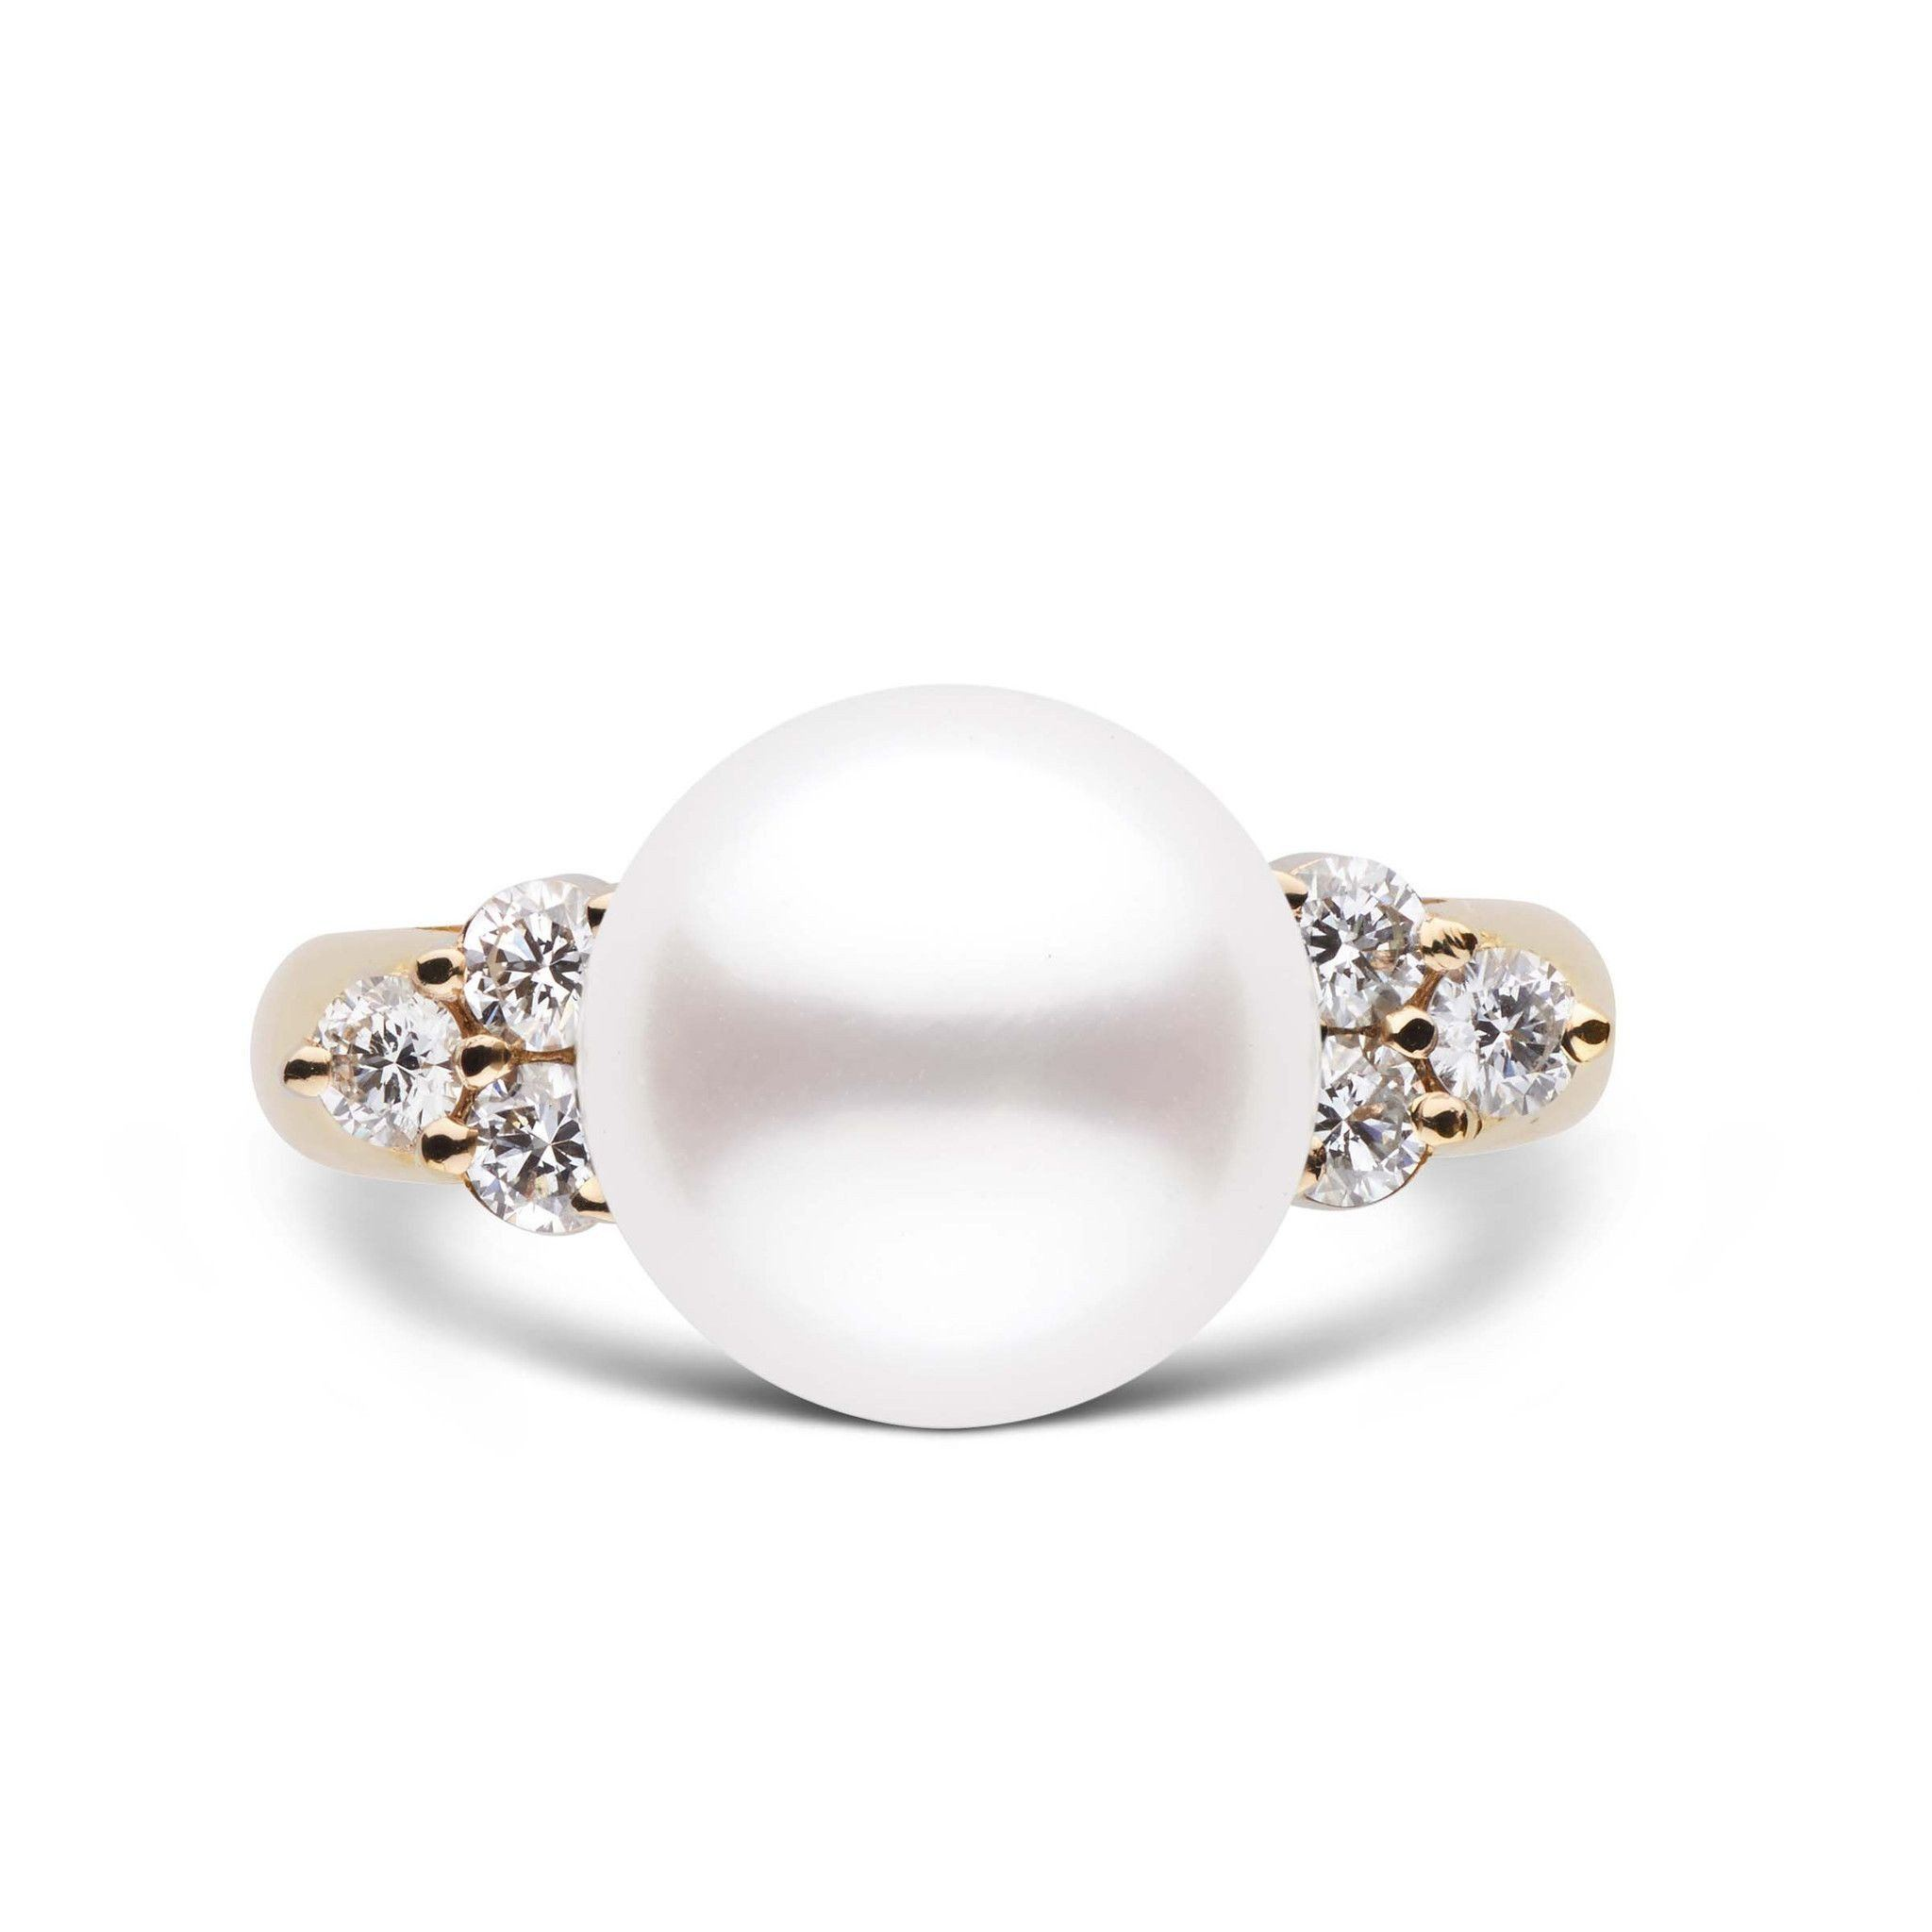 Always Collection White 10.0-11.0 mm South Sea Pearl Ring